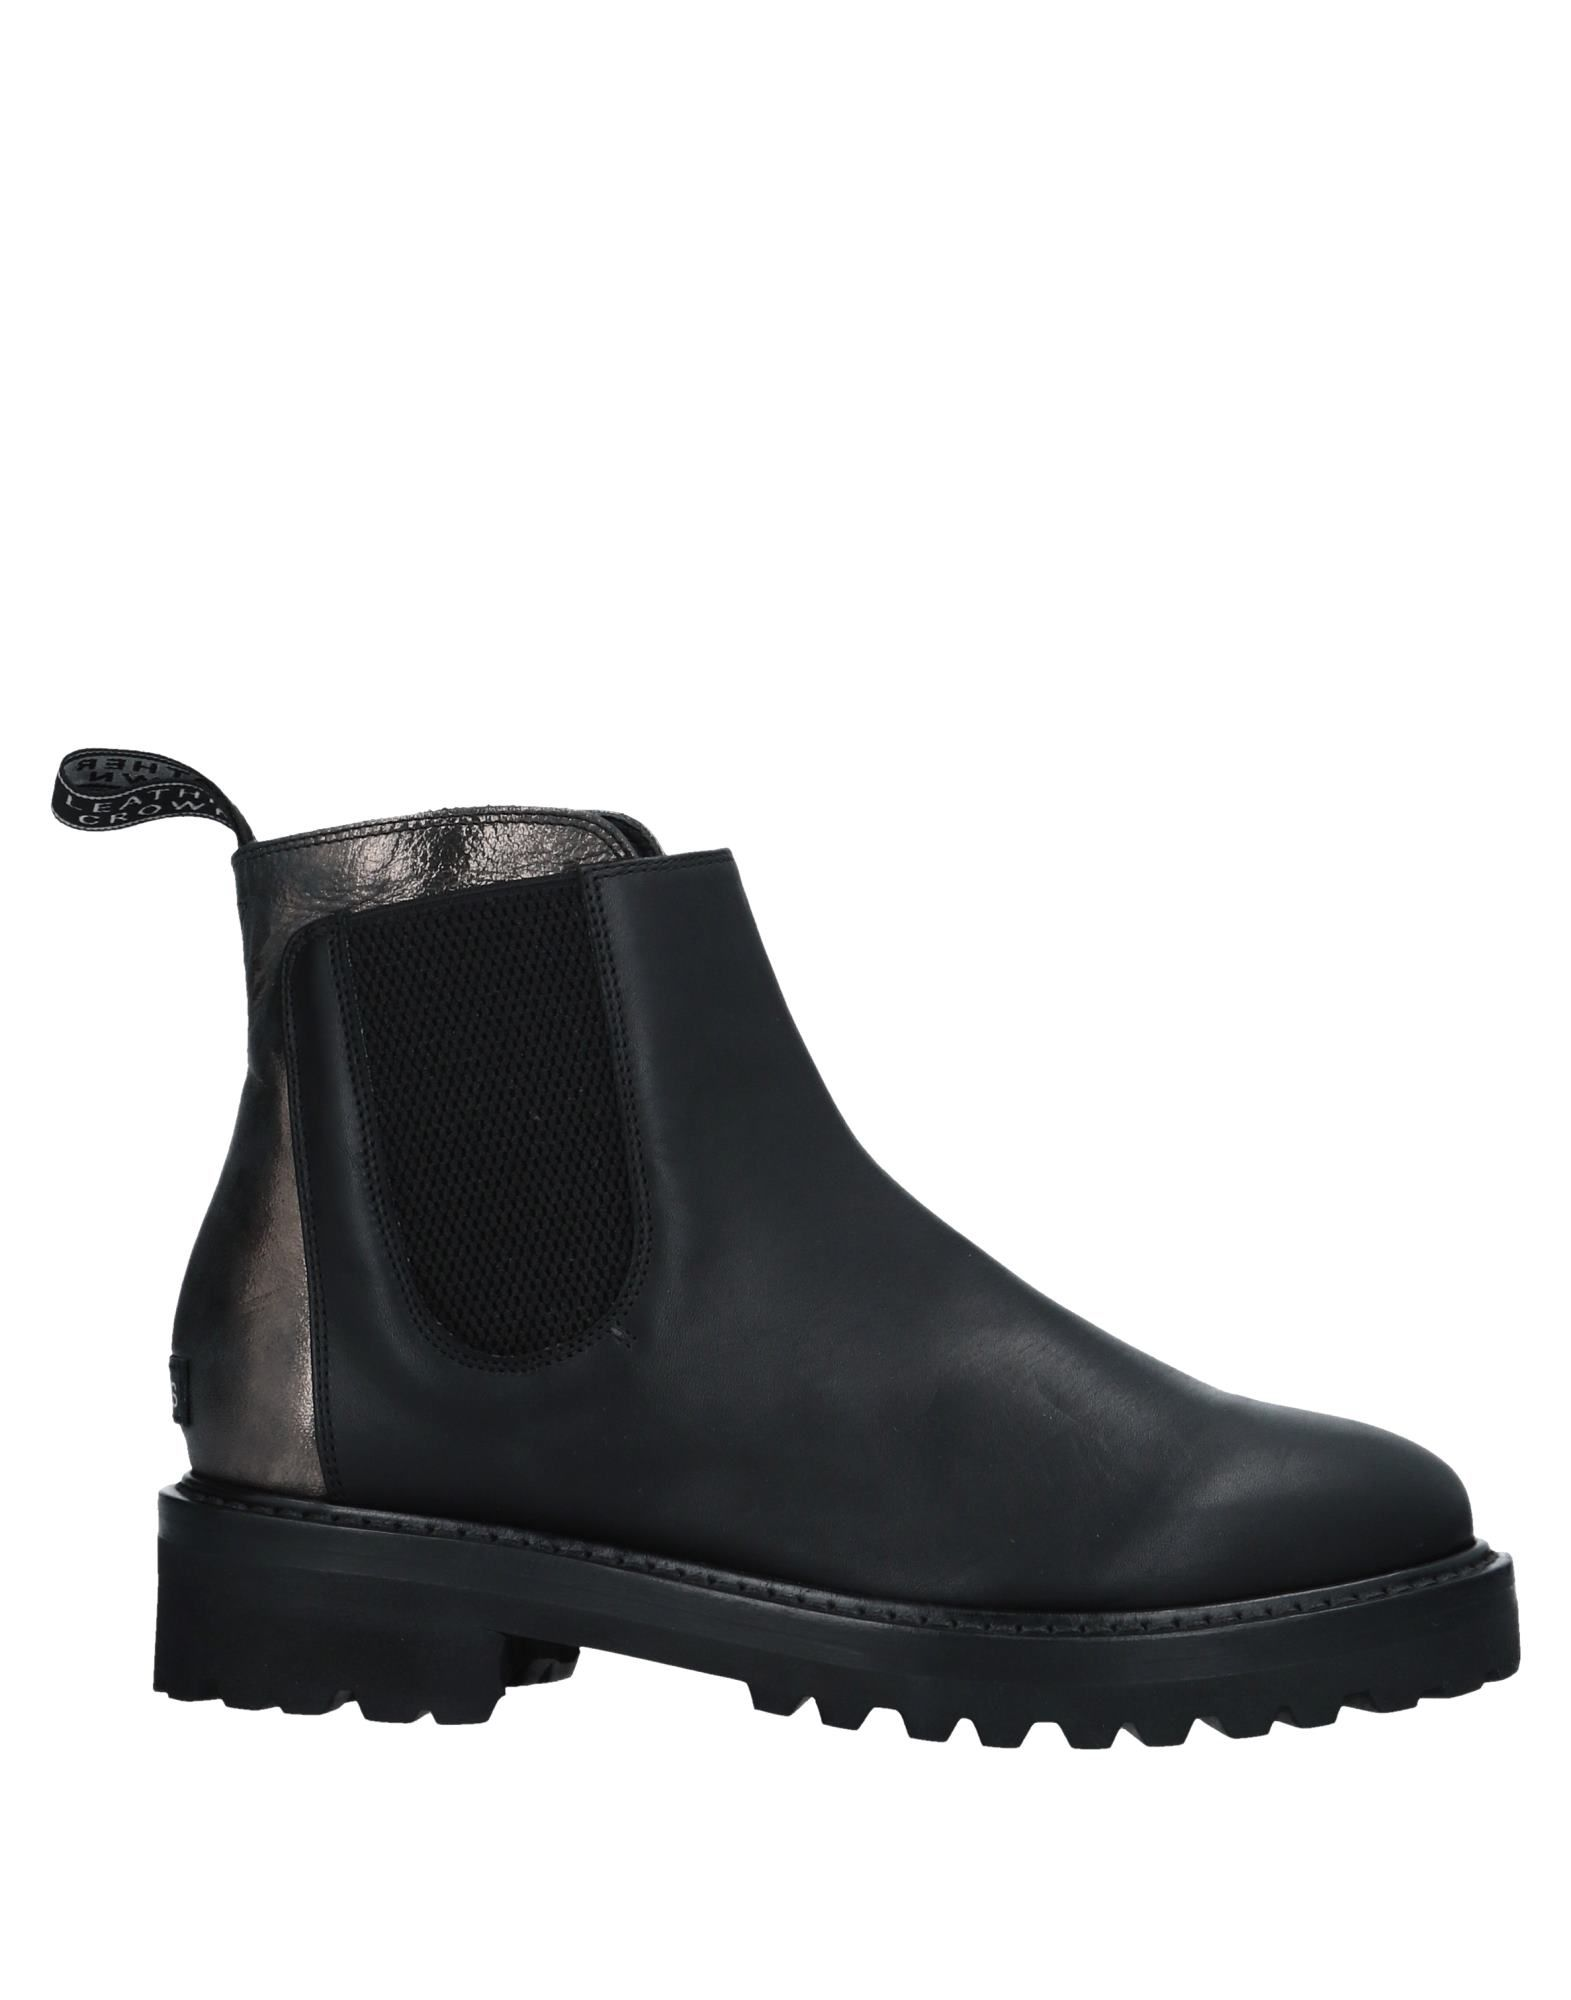 Chelsea Boots Leather Crown Donna - 11531925DM